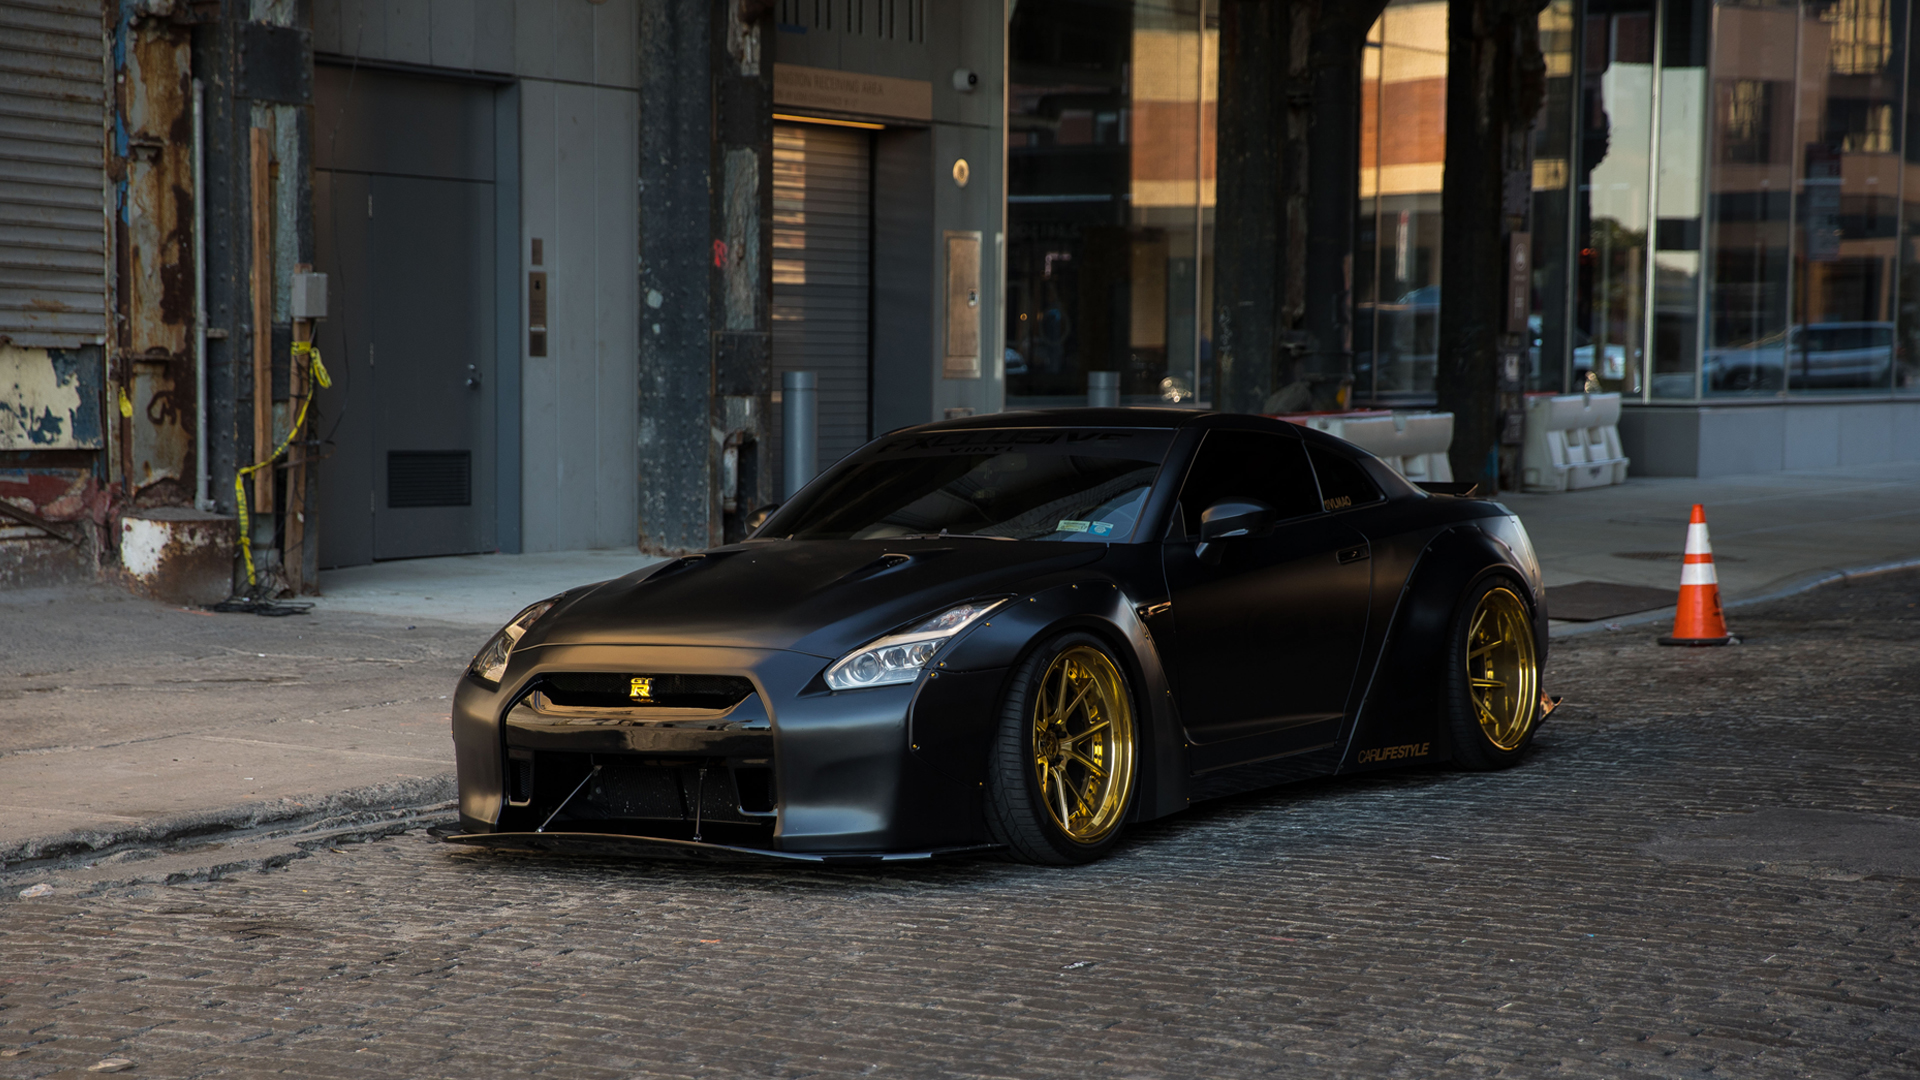 Car Desktop Wallpaper Hd 3d Full Screen Free Download Download Black Gtr Wallpaper Gallery